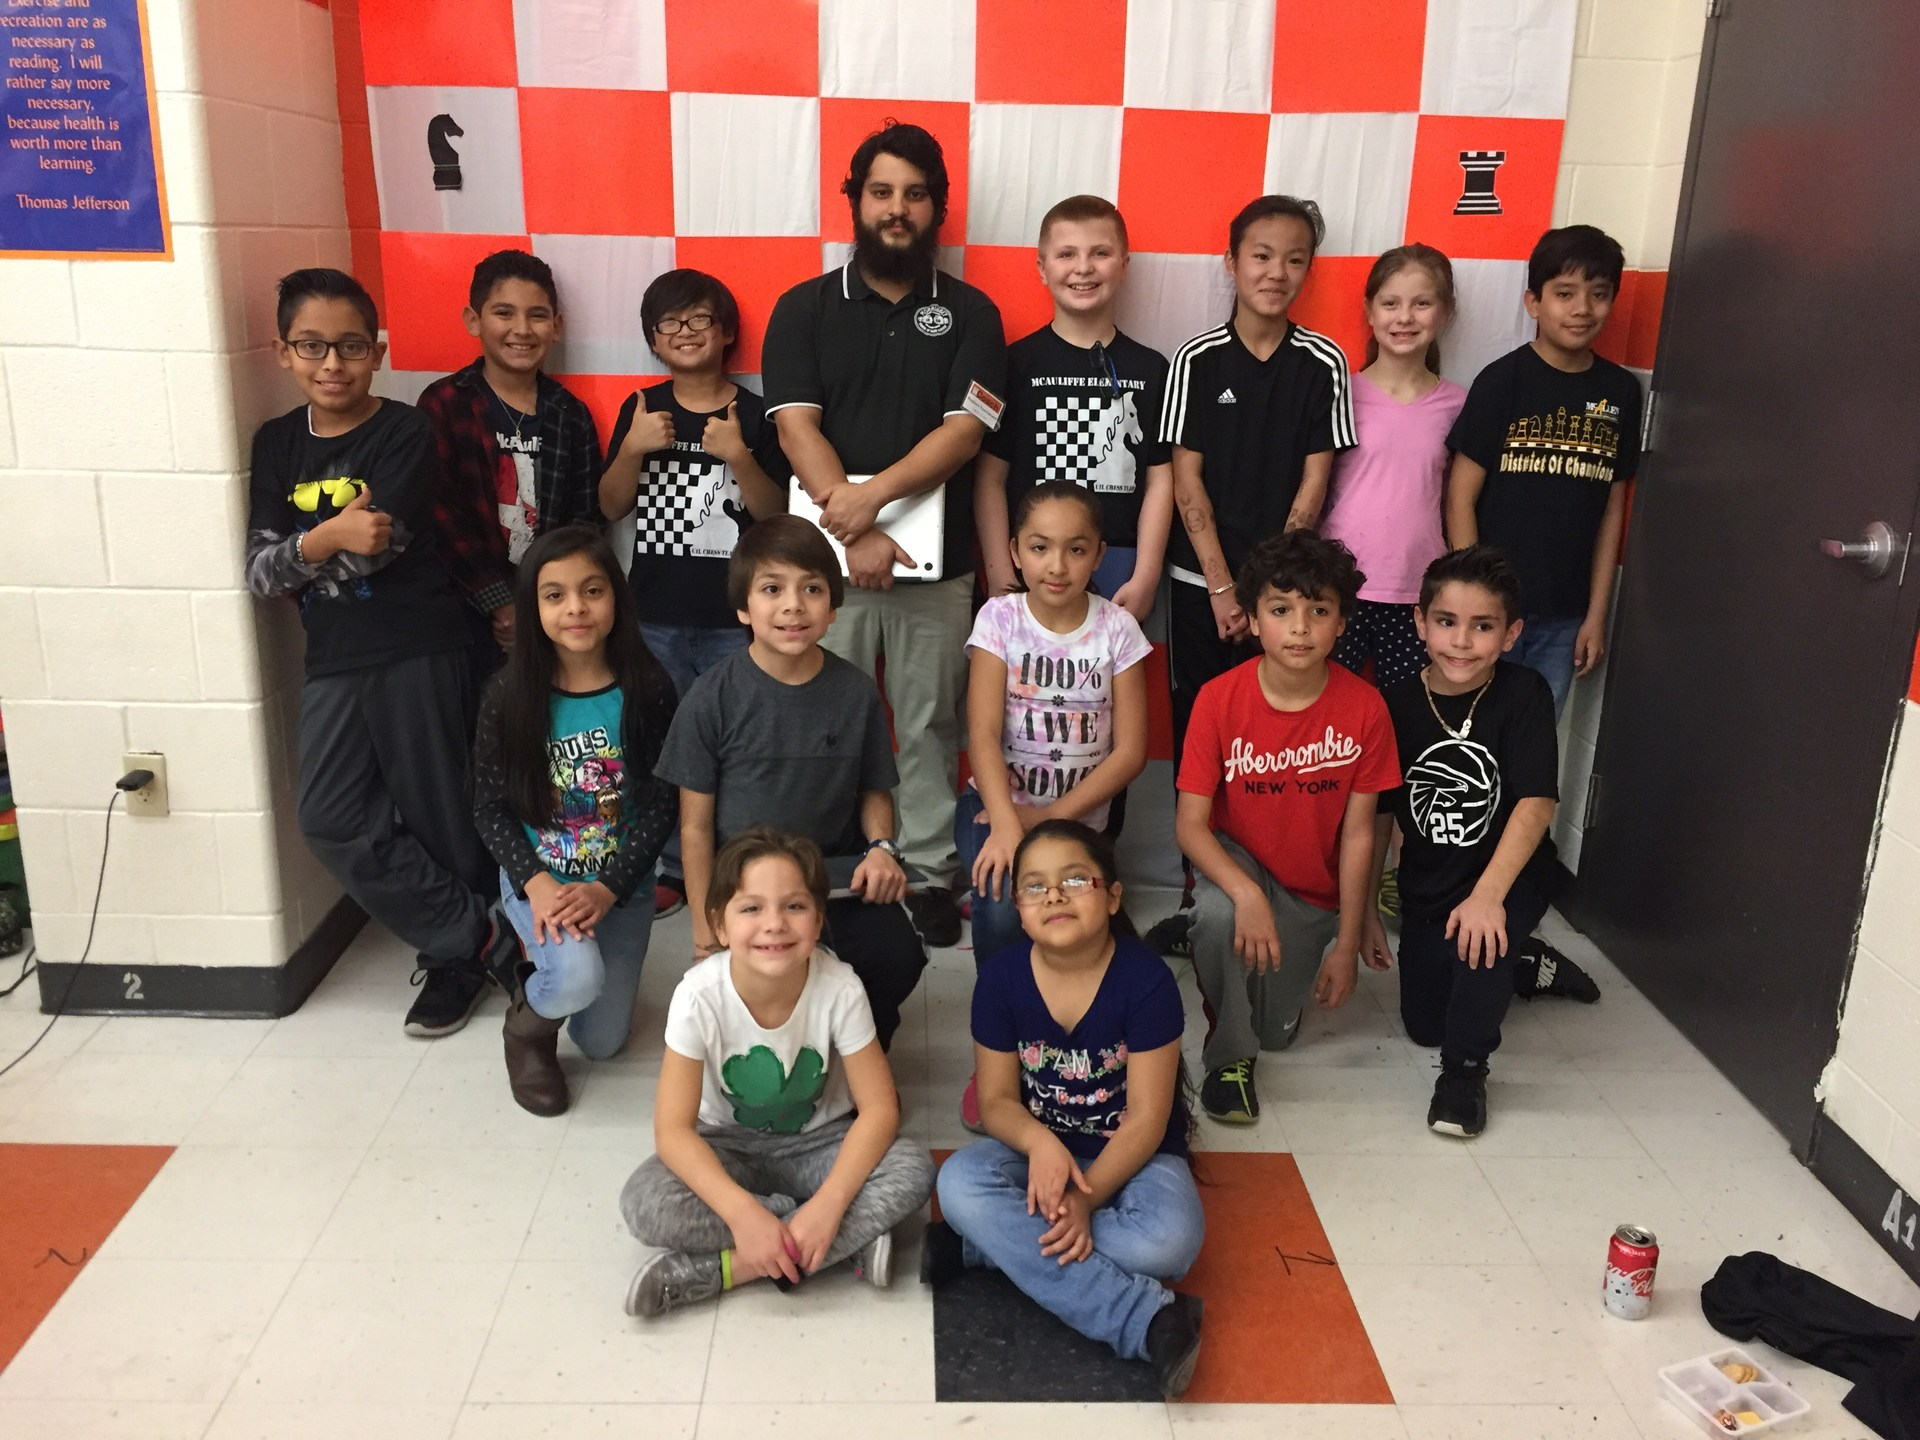 Students posing with Coach Mr. Morales at their chess tournament.